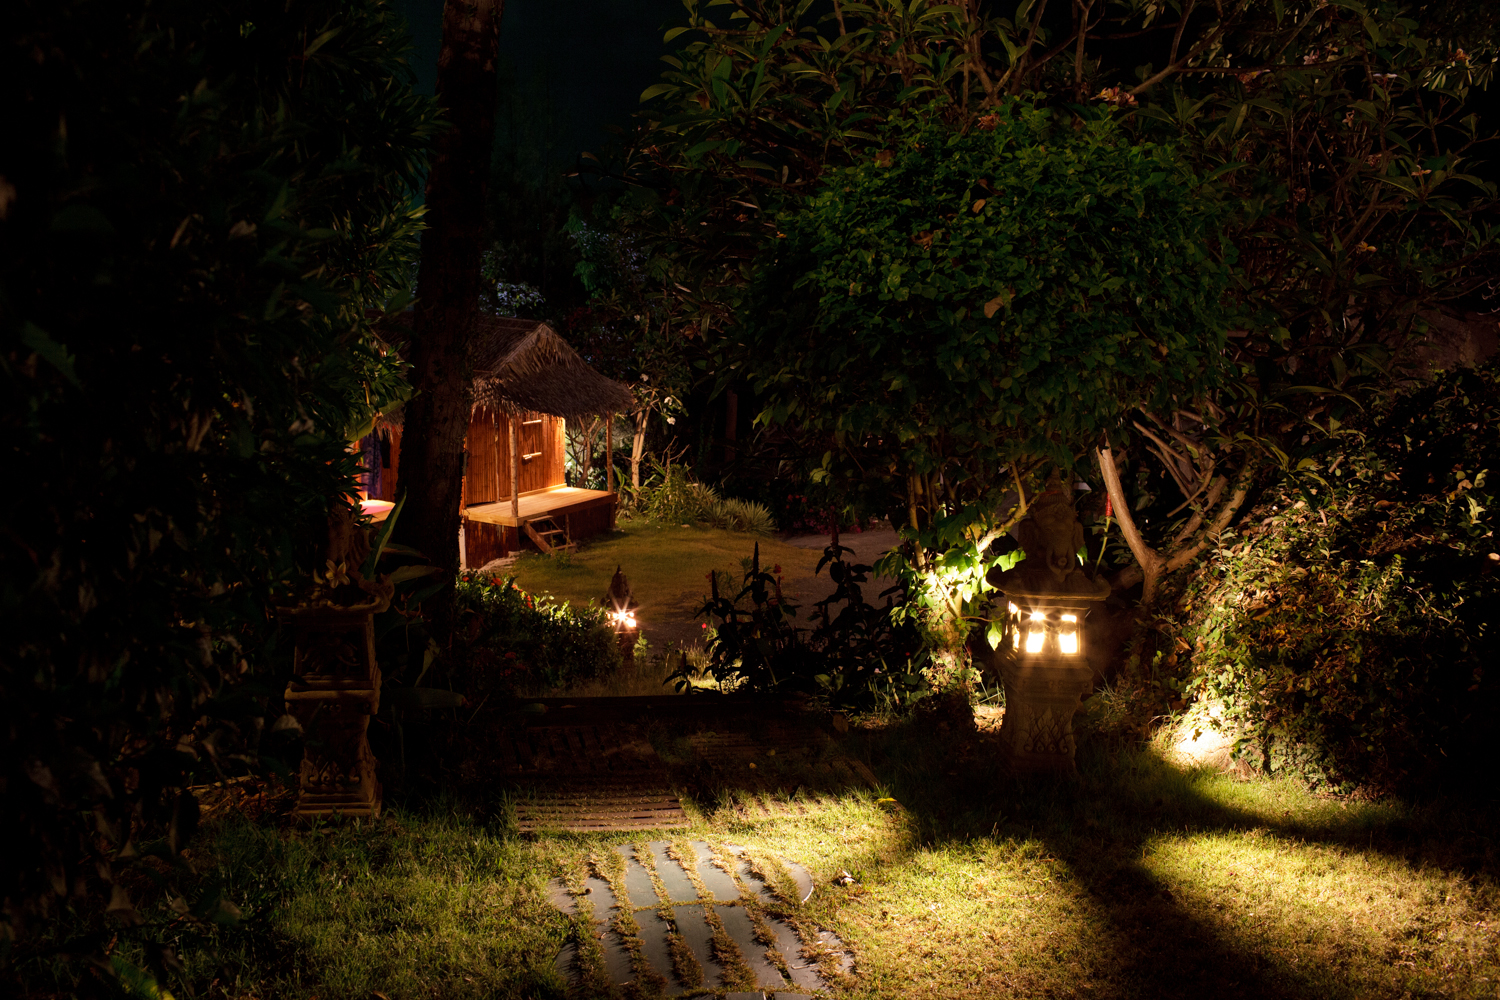 Spring Sneak Peek: Exploring Your Edges, An Honest Retreat in Koh Samui, by Victoria Mary Clarke